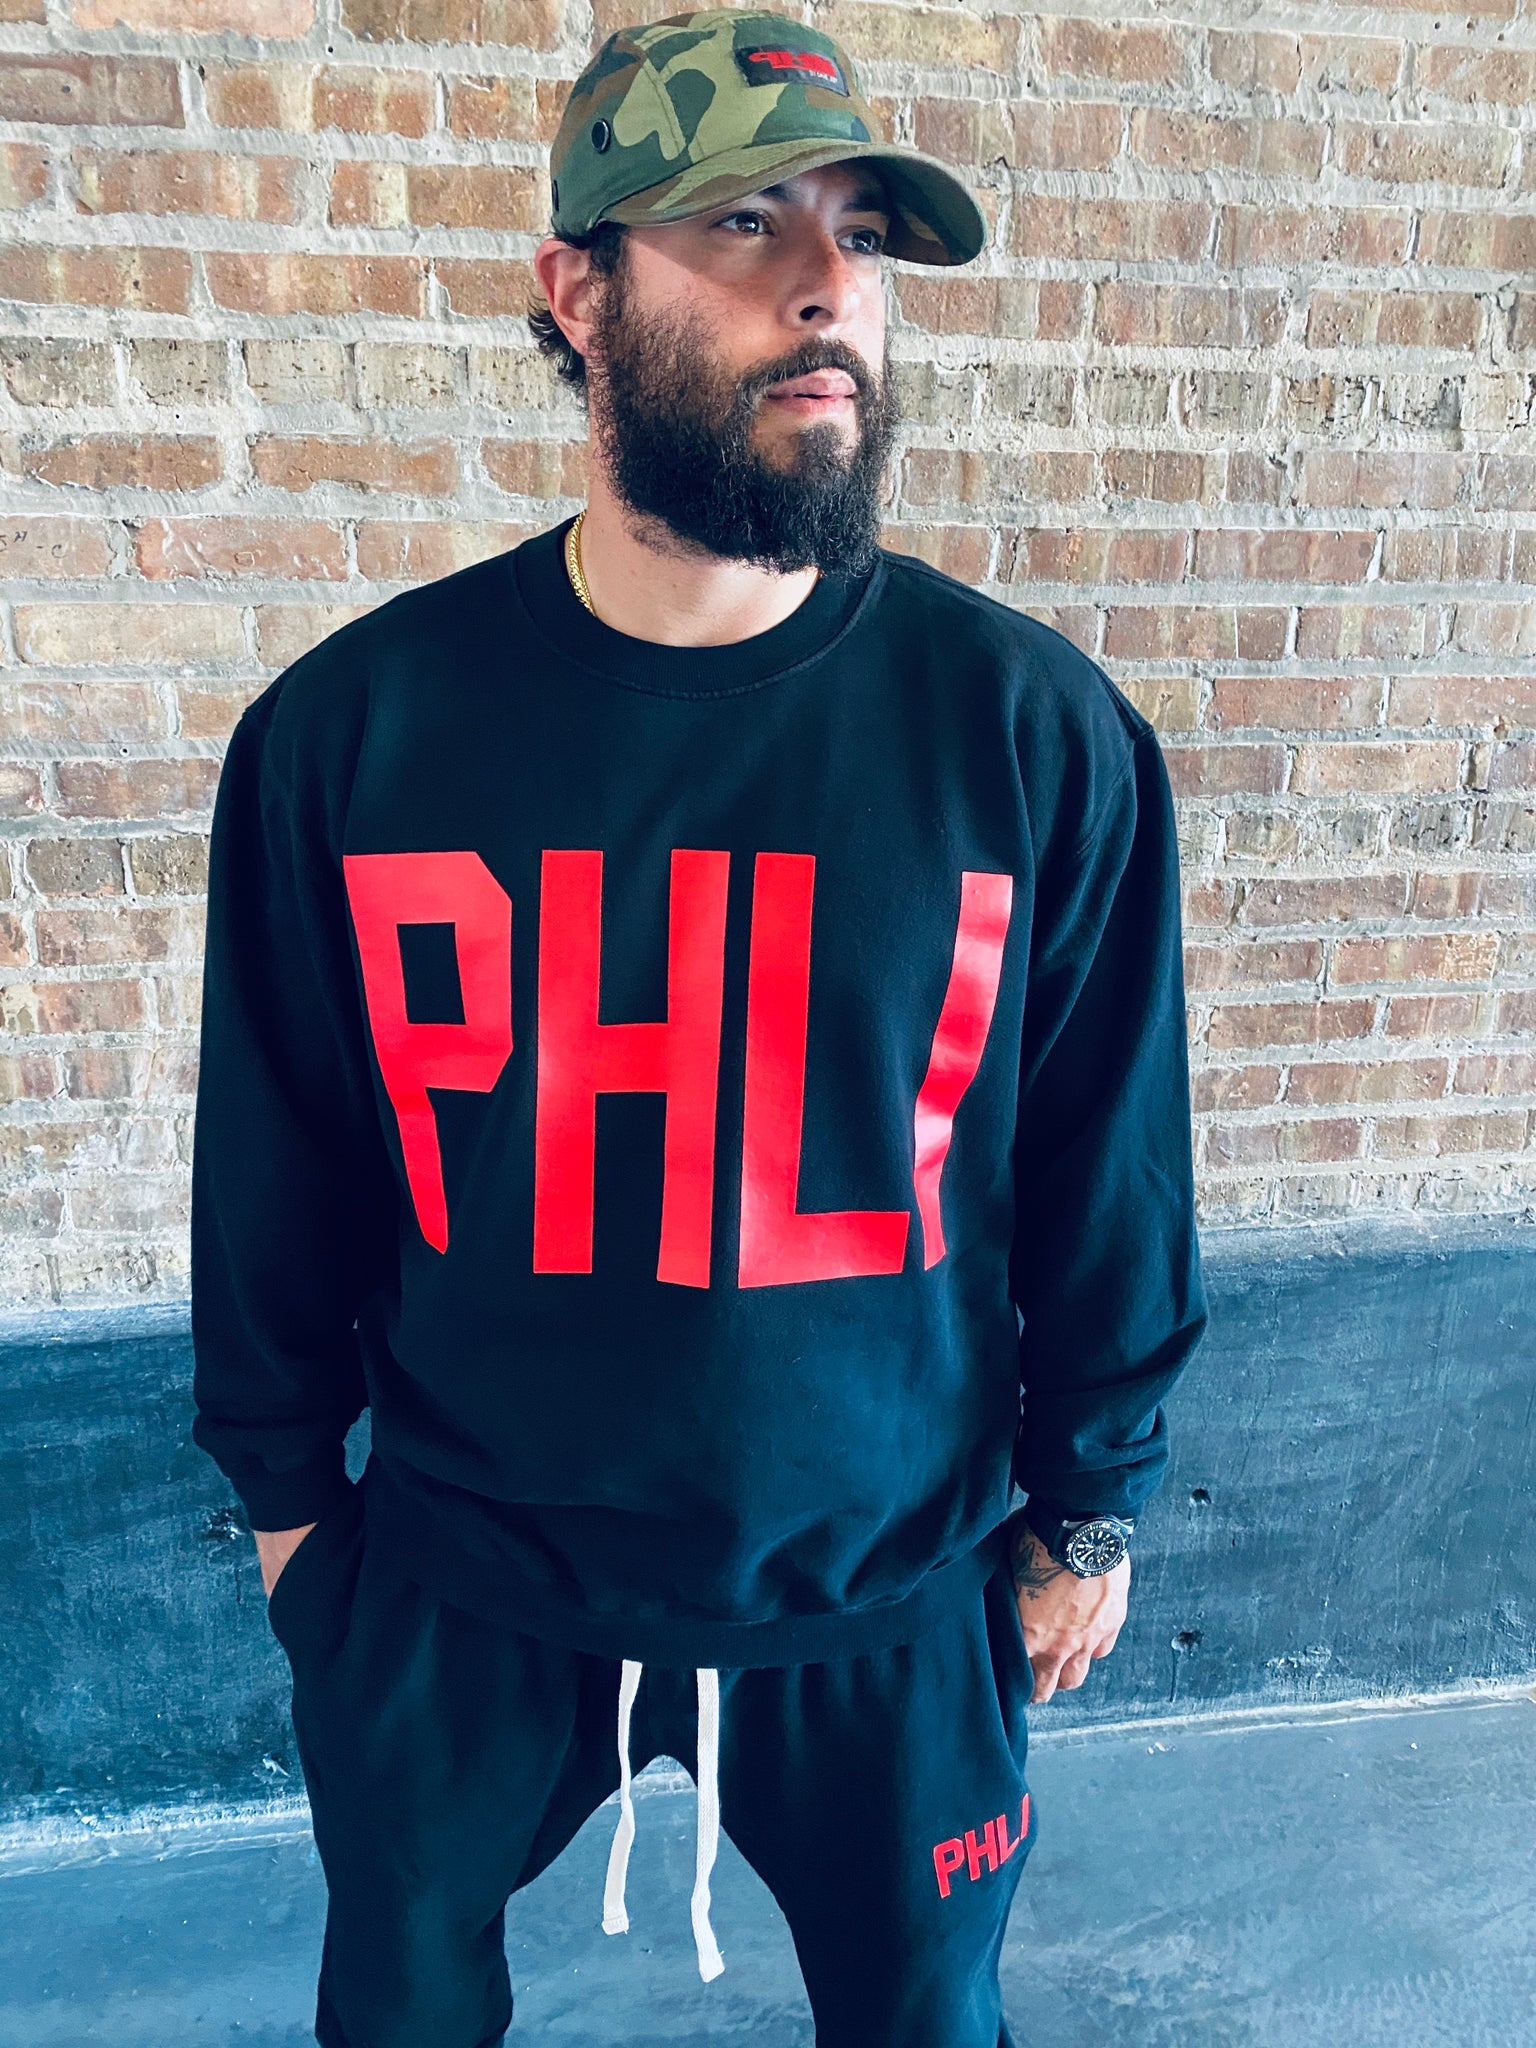 COLLEGIATE PHLI LOGO JOGGING SUIT (C&S)